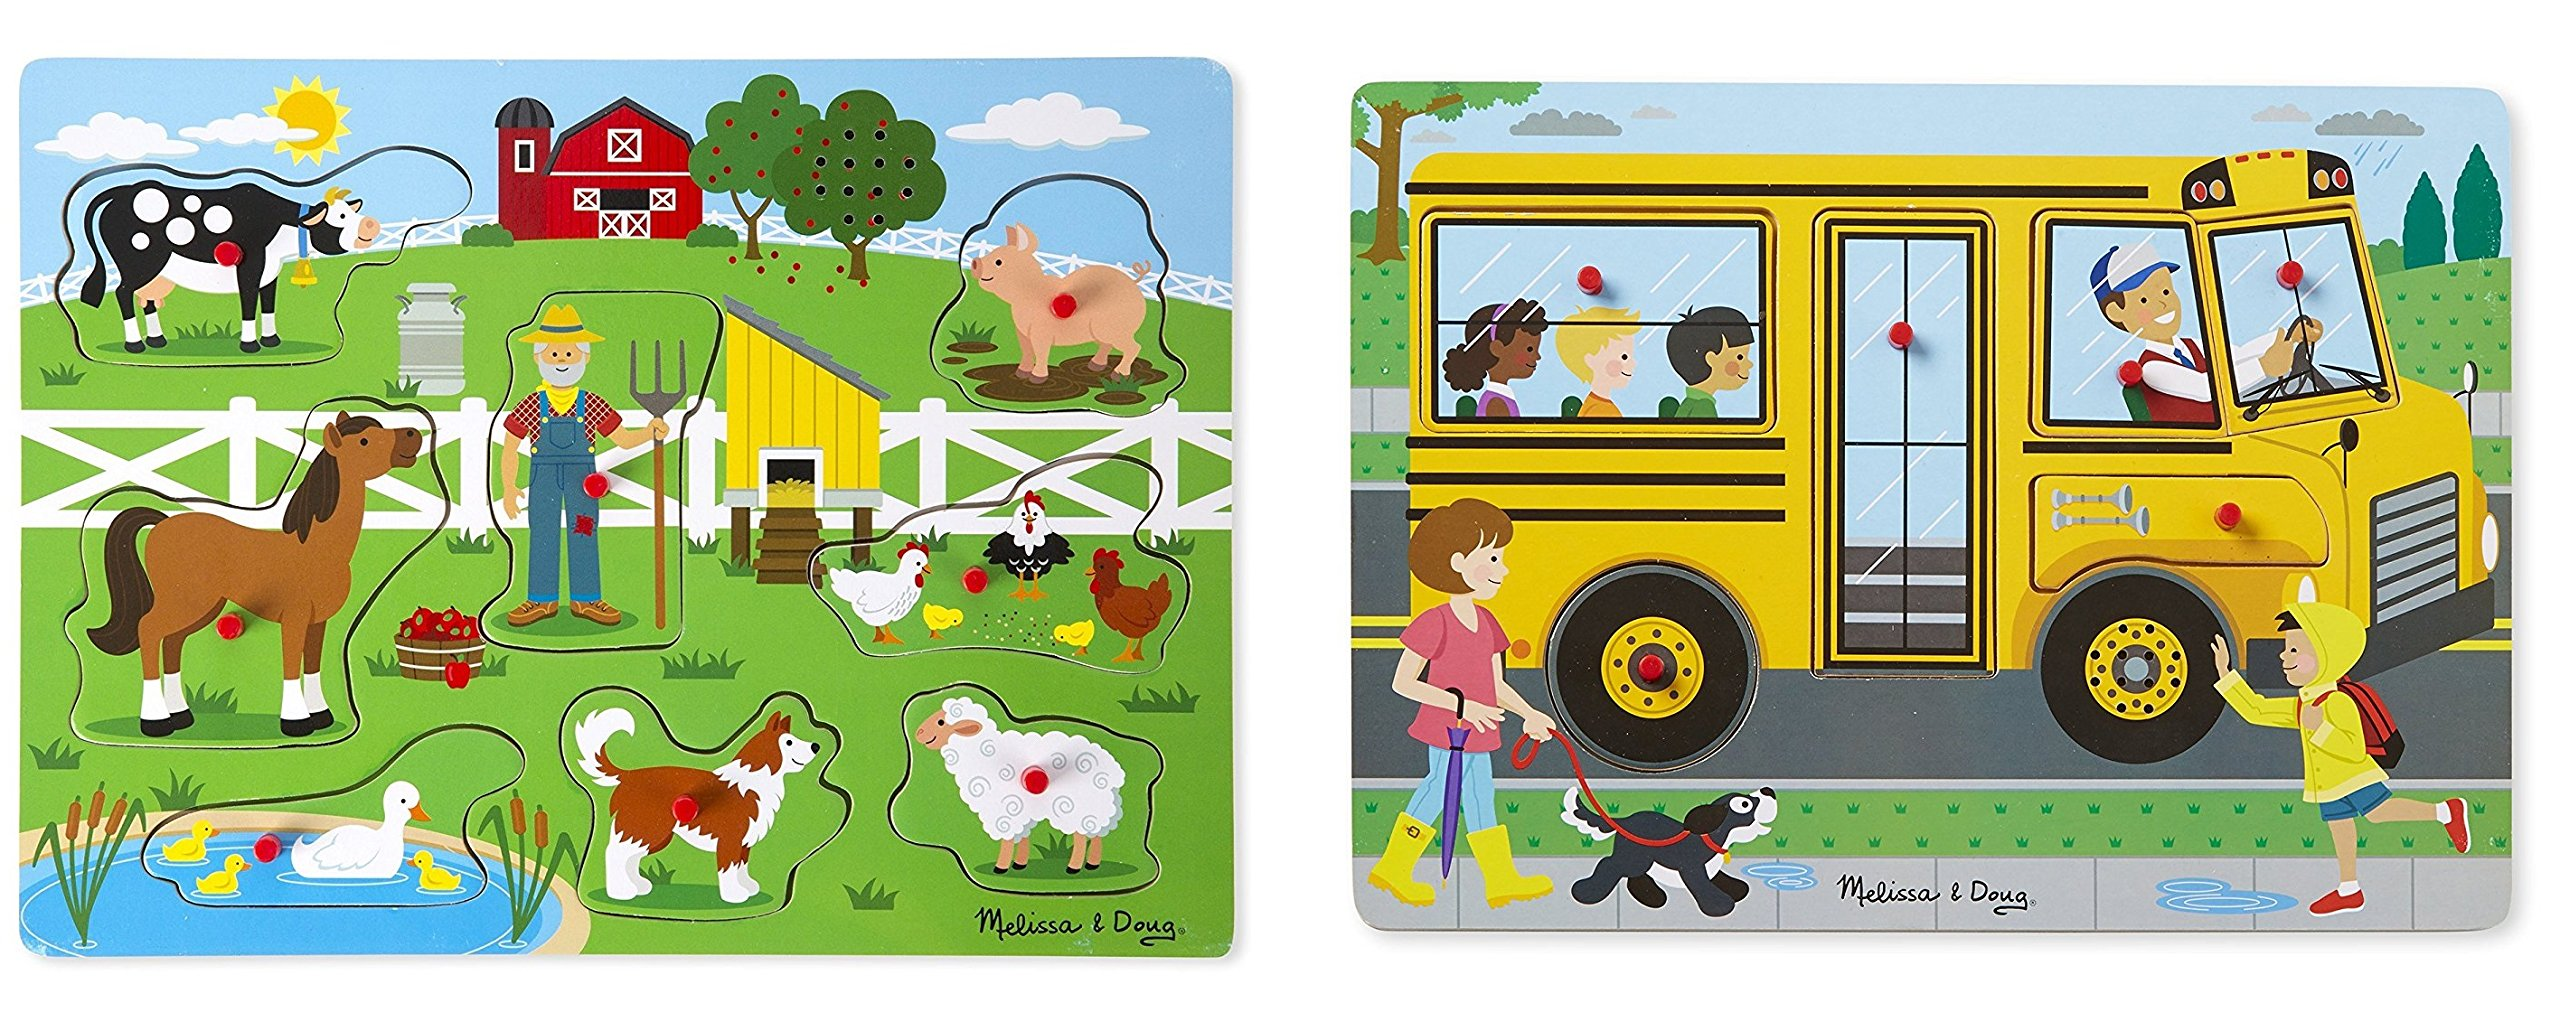 Melissa & Doug The Wheels On The Bus Sound Puzzle (6 Piece) With Old Macdonald's Farm Sound Puzzle (8 Piece)